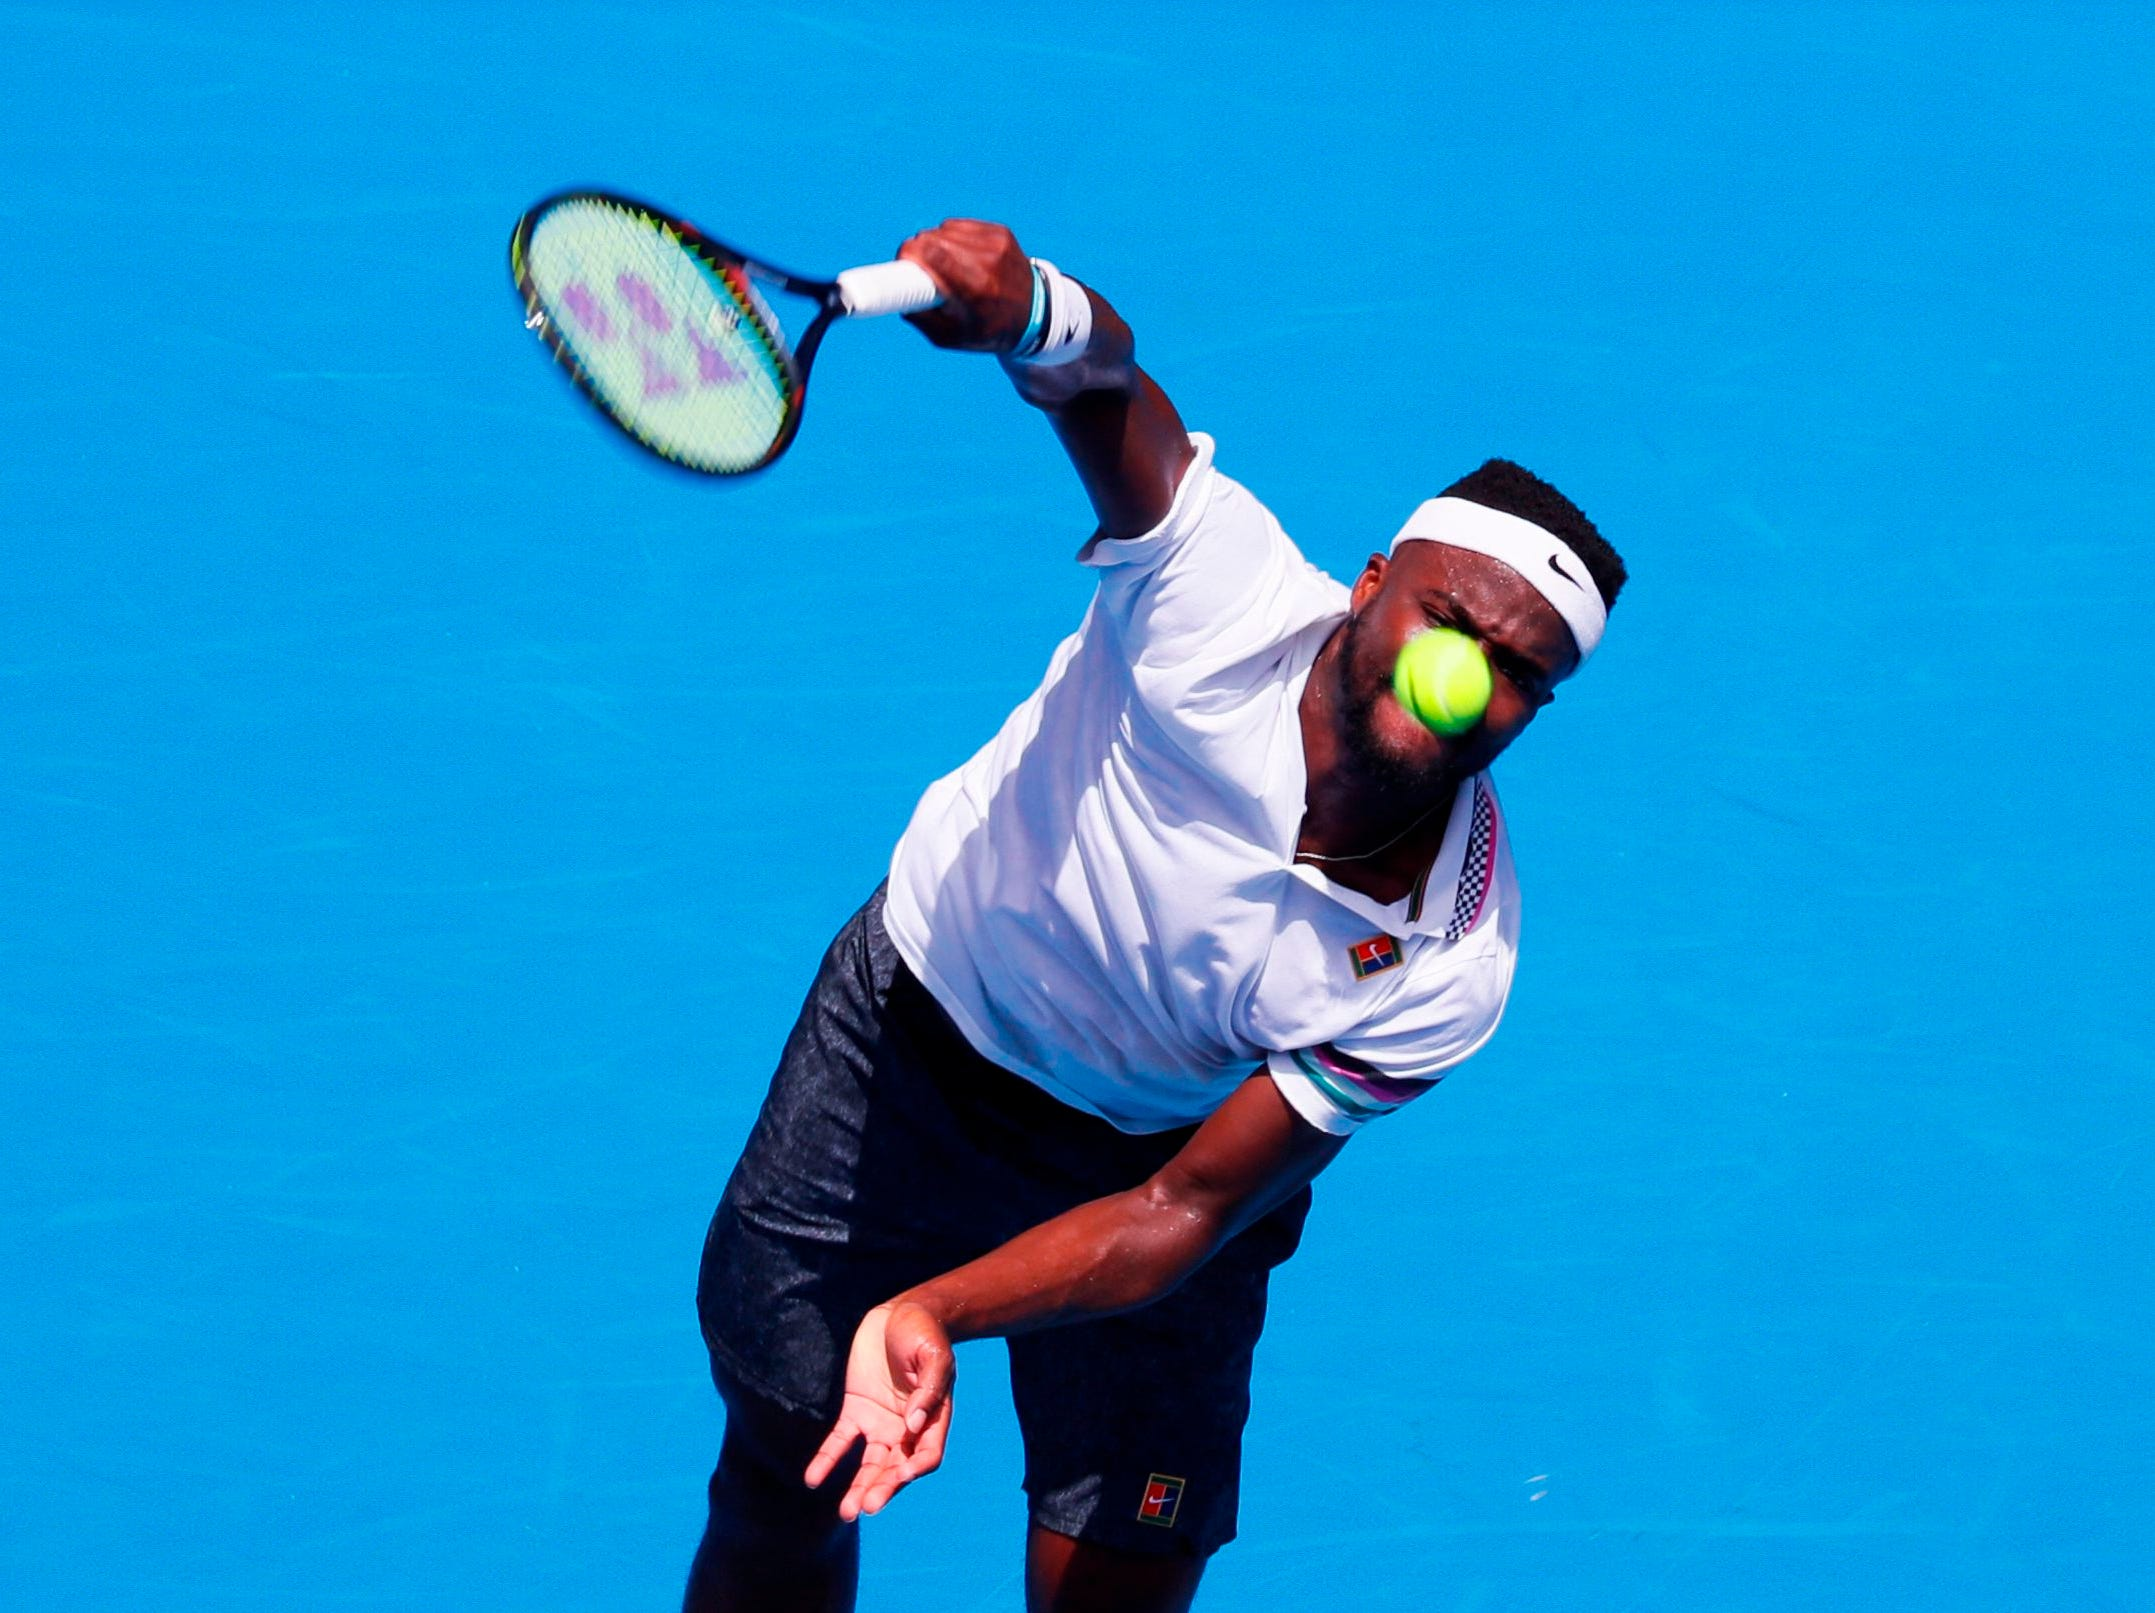 Frances Tiafoe of the USA serves against Bulgaria's Grigor Dimitrov during their men's singles match.